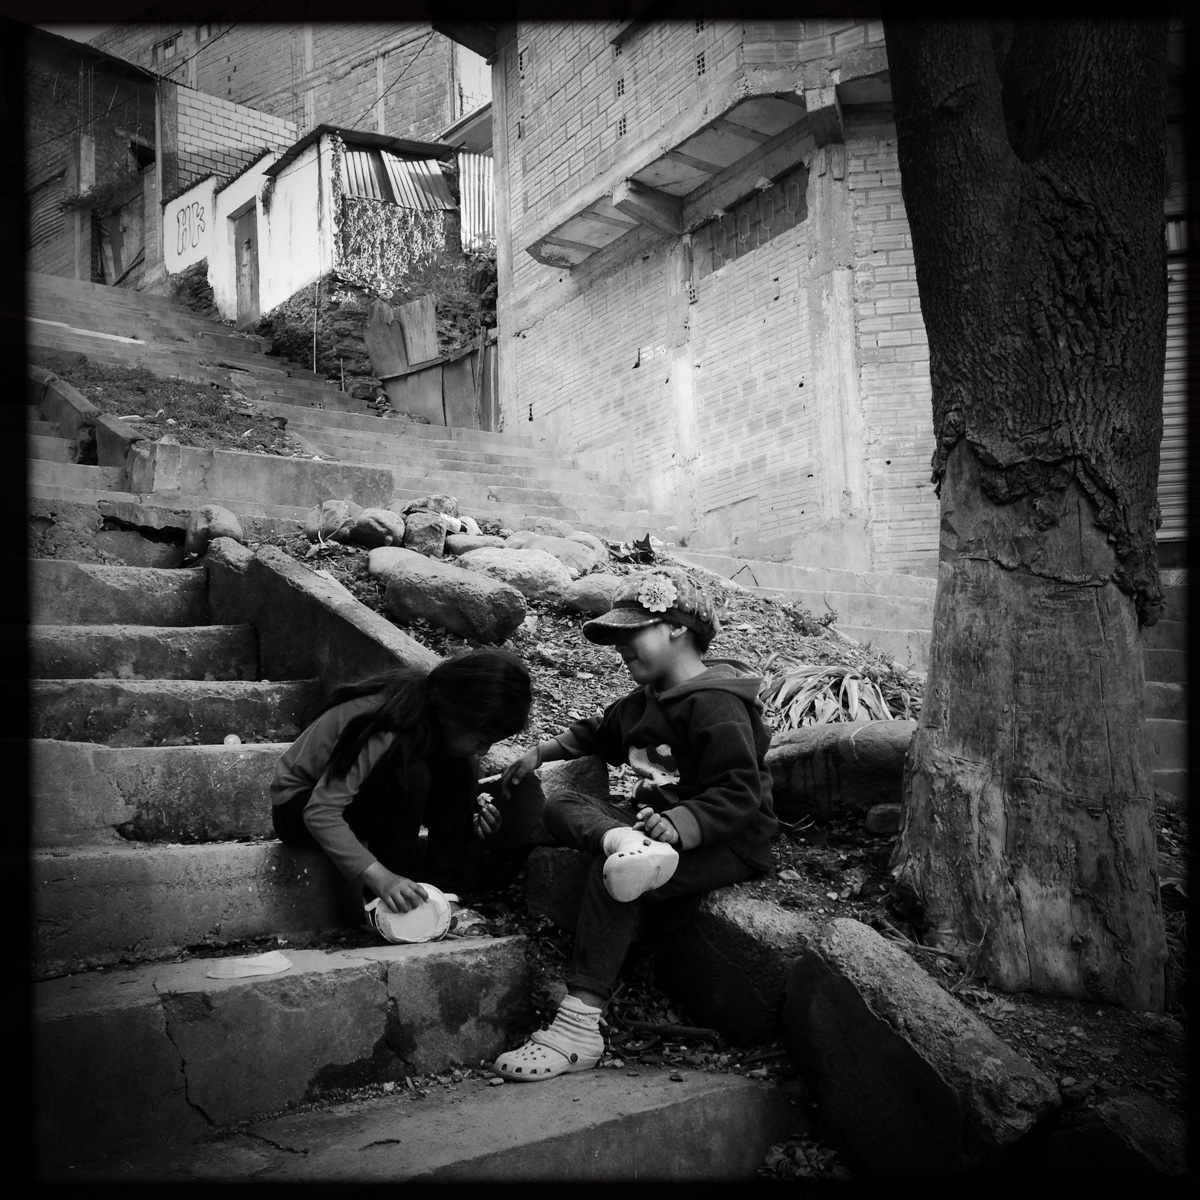 Young girls play on a steps cutting through Coripata